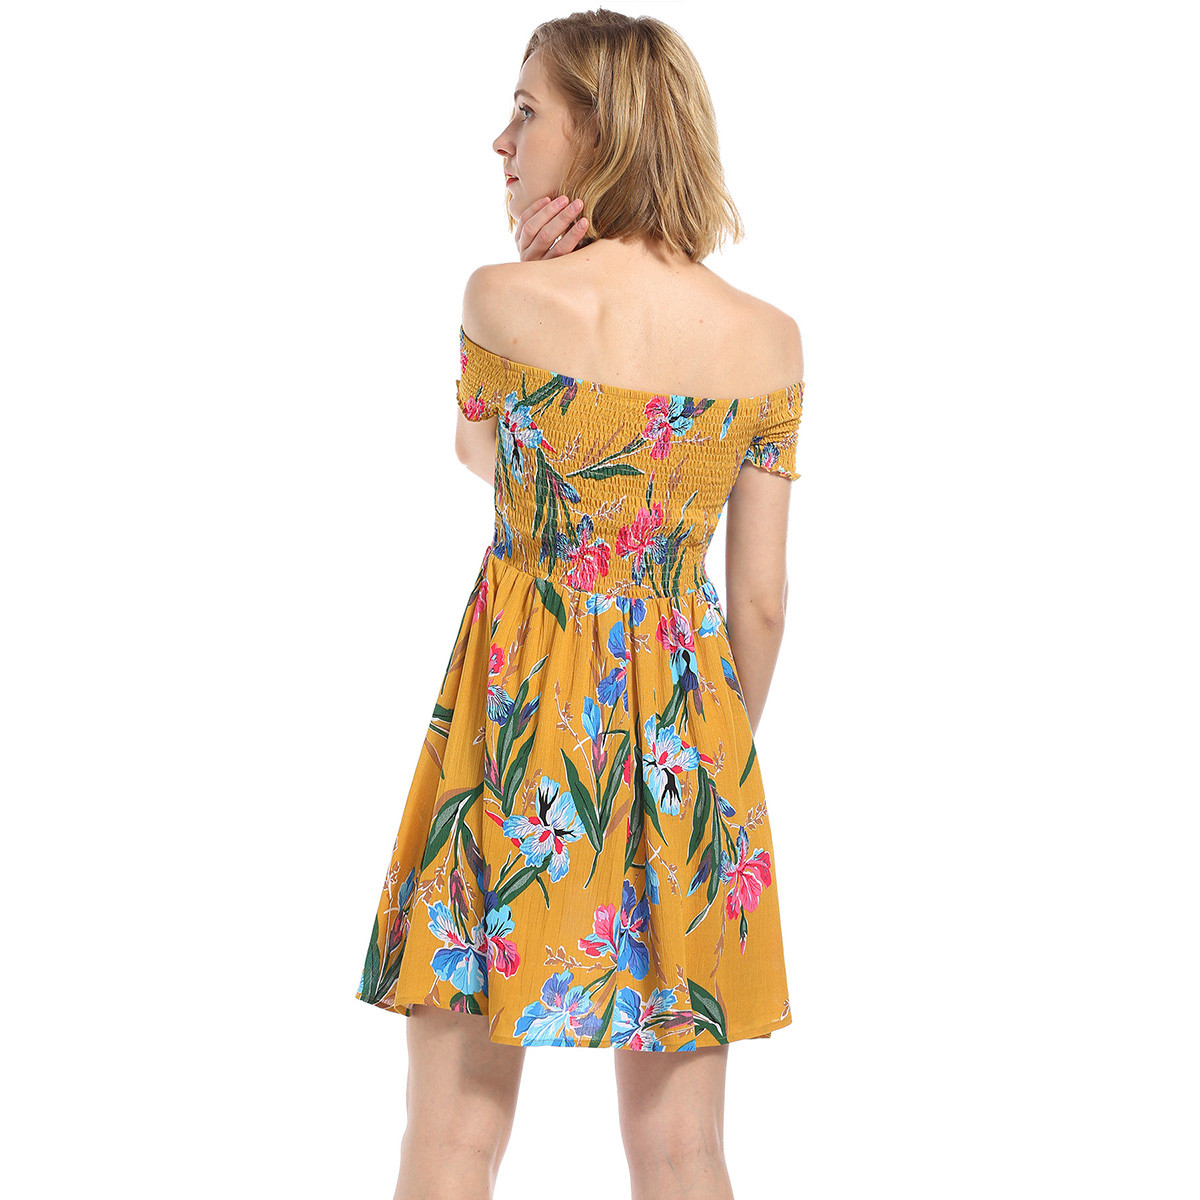 Aphrodite Home Y Folds Off Shoulder Summer Dress Women Flower Print Short Casual Beach Female Yellow A Line In Dresses From S